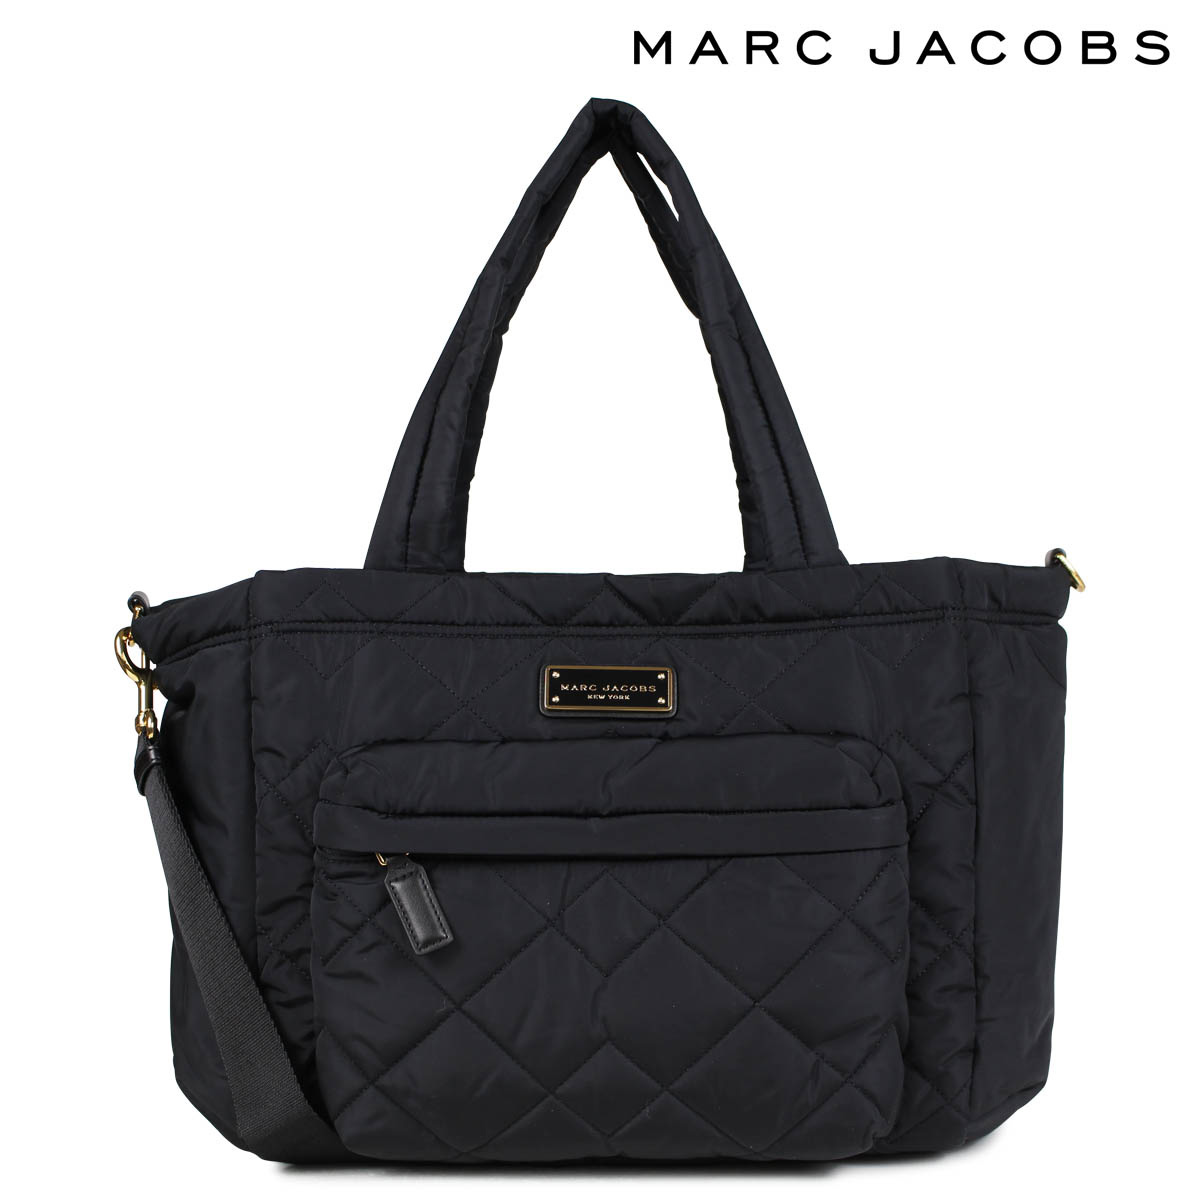 MARC JACOBS QUILTED NYLON TOTE マークジェイコブス バッグ トートバッグ マザーズバッグ レディース ブラック M0011380